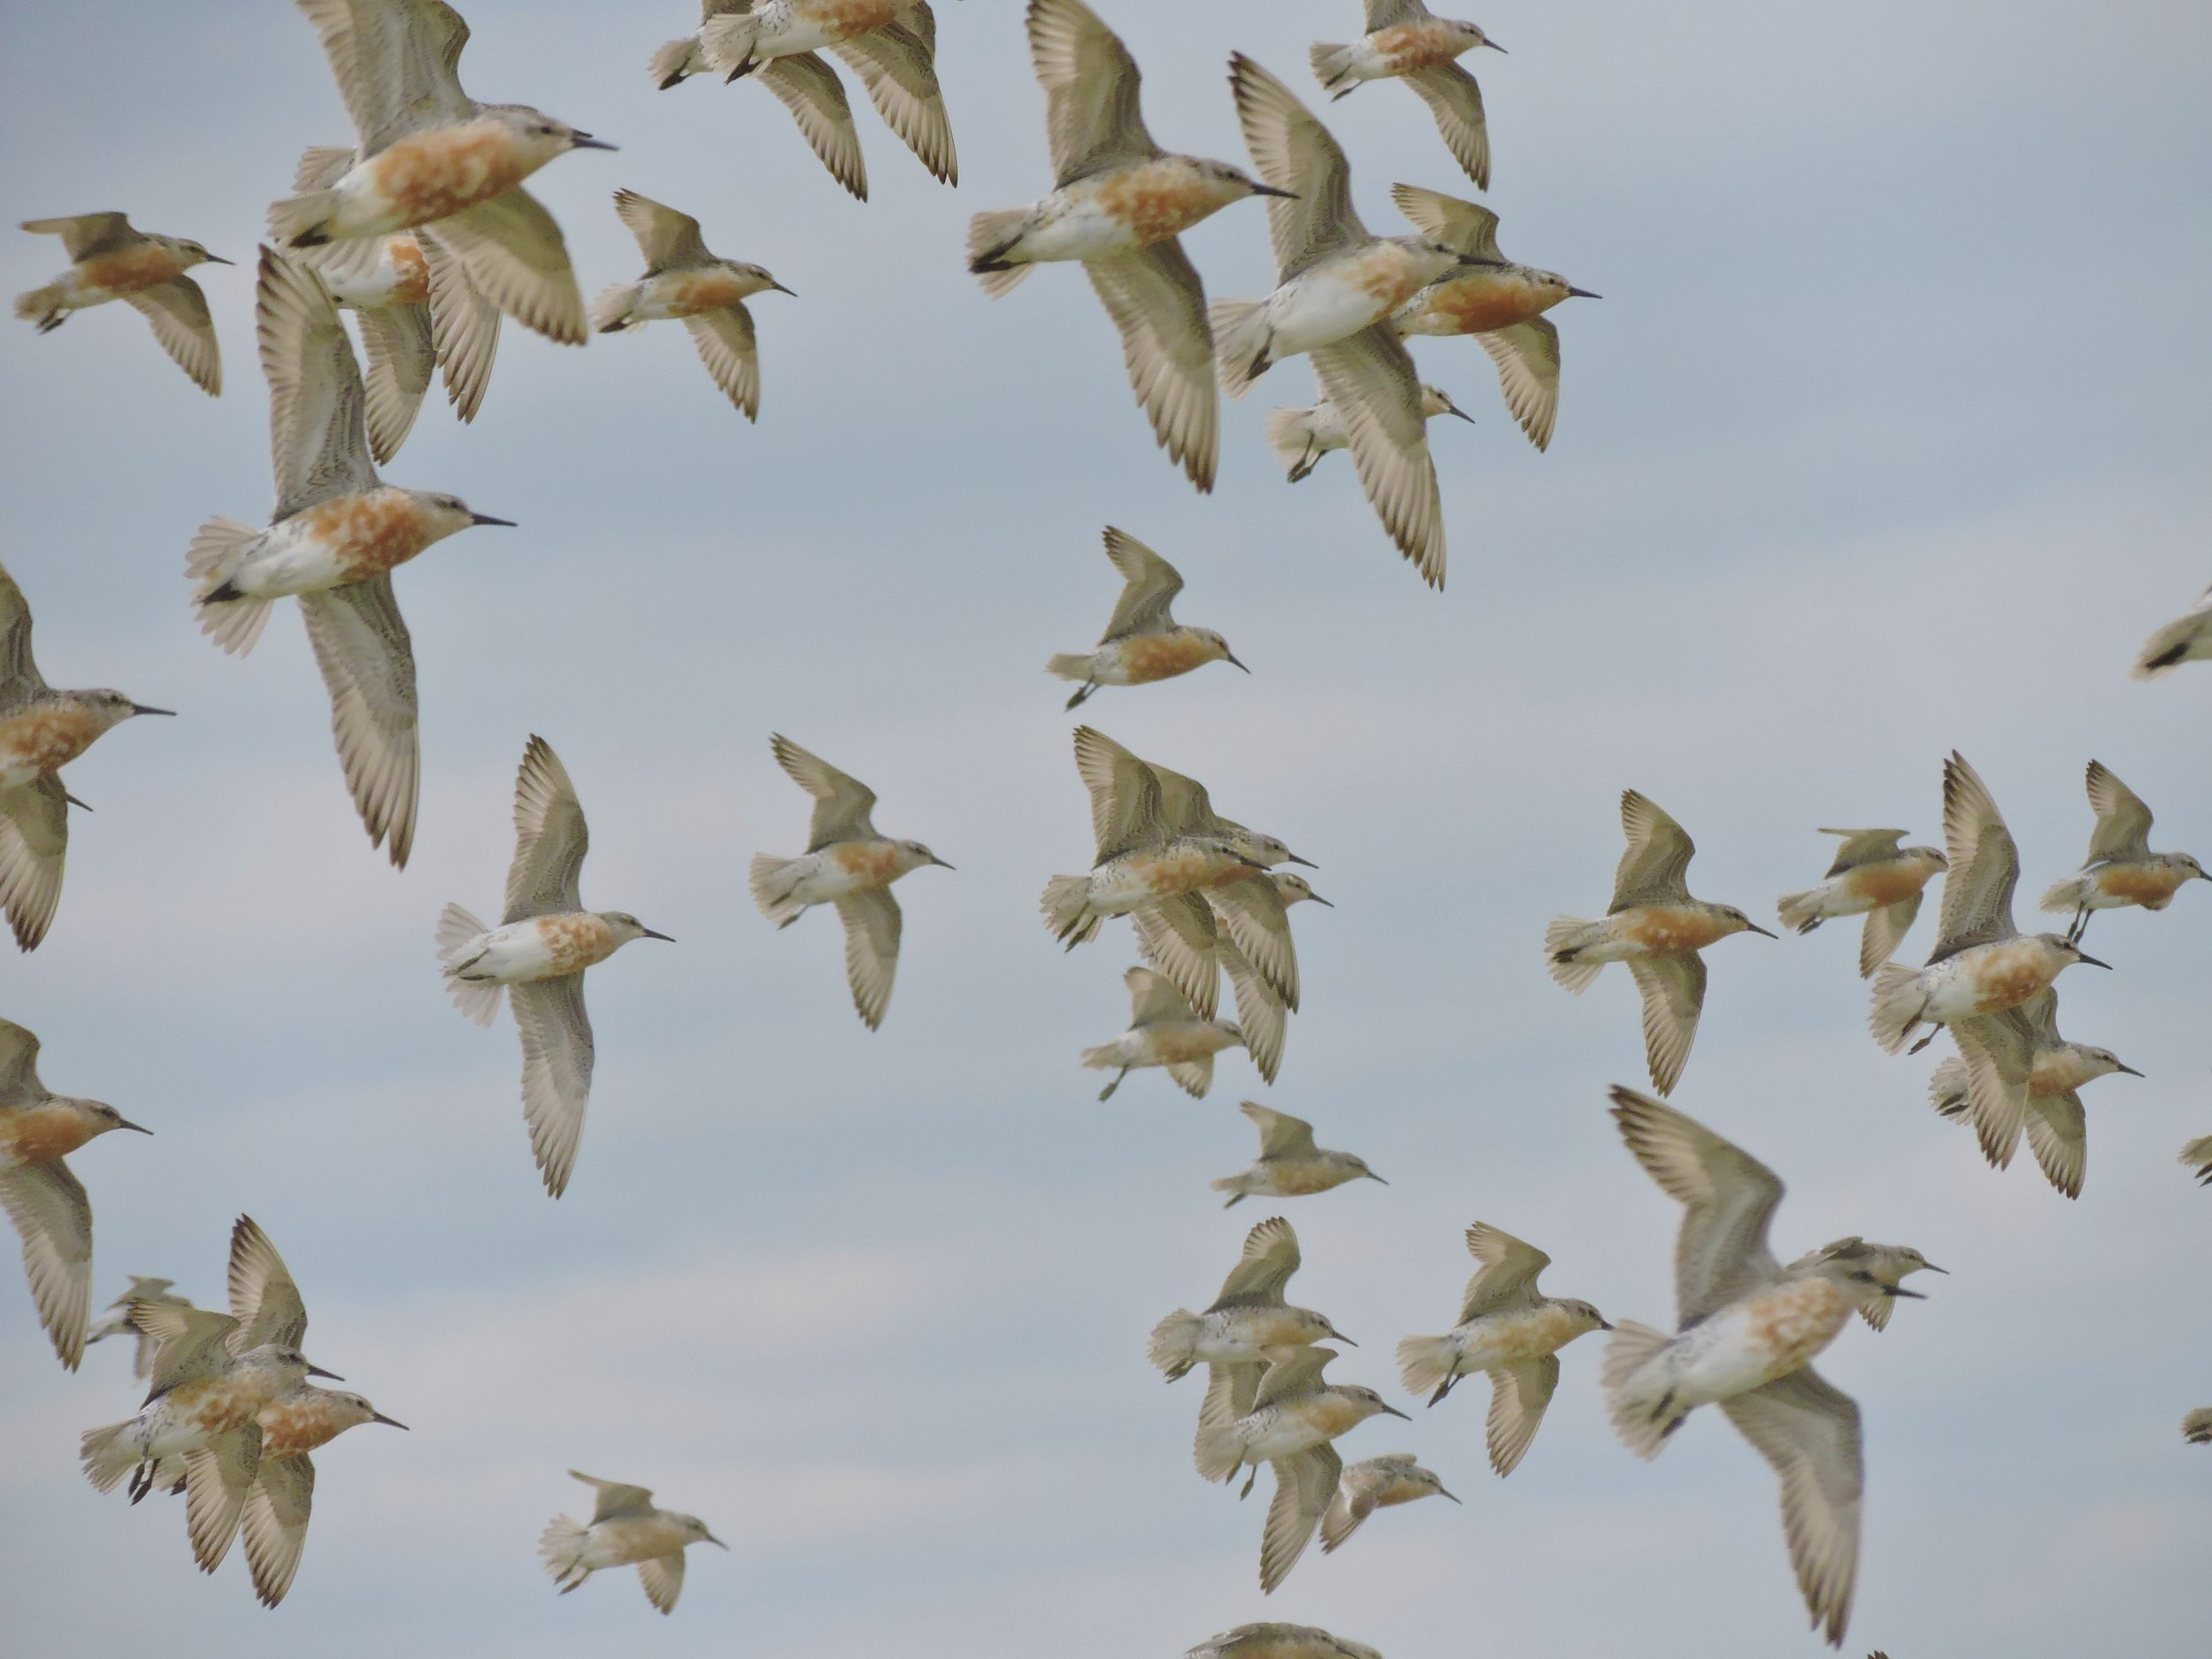 Red Knots in flight at Little Piskwamish Point.